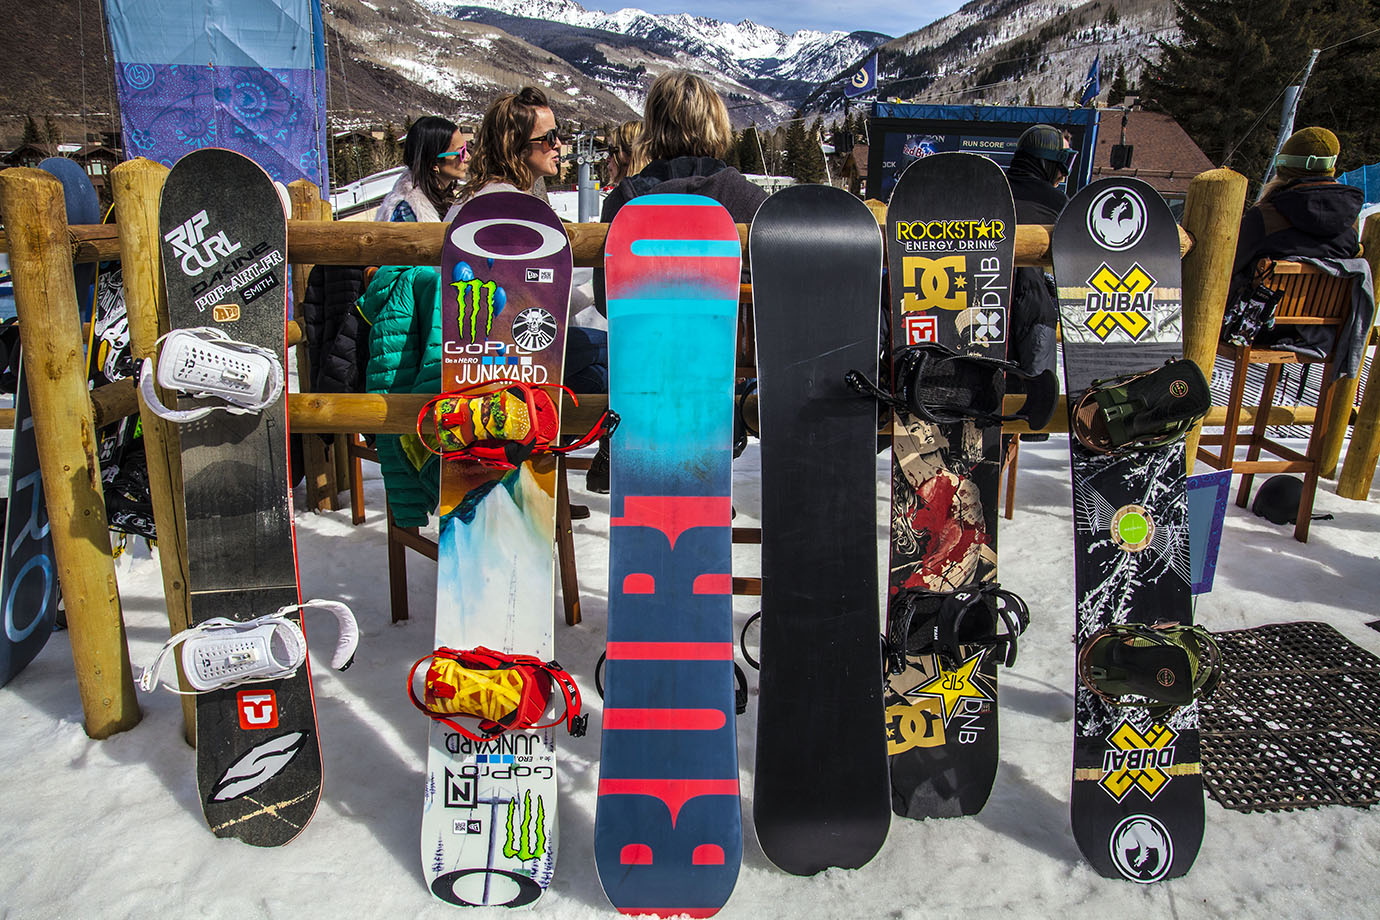 The snowboards belonging to the superpipe riders littered the area outside of the athlete's lounge on Saturday morning before the women's final.